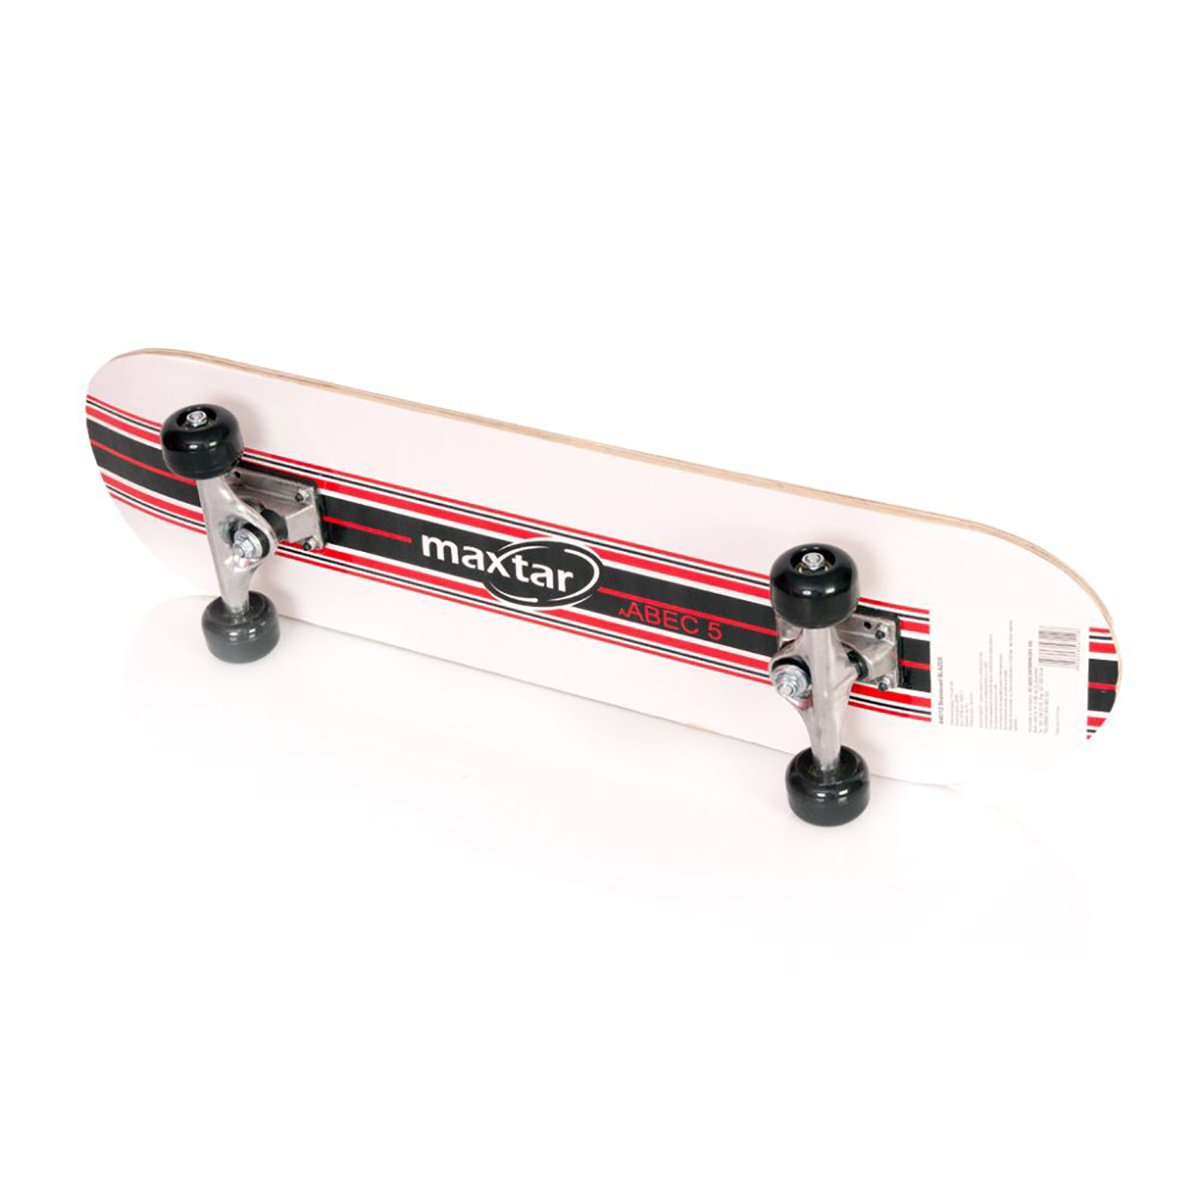 Skateboard Blazer Maxtar, 71 x 20 cm imagine 2021